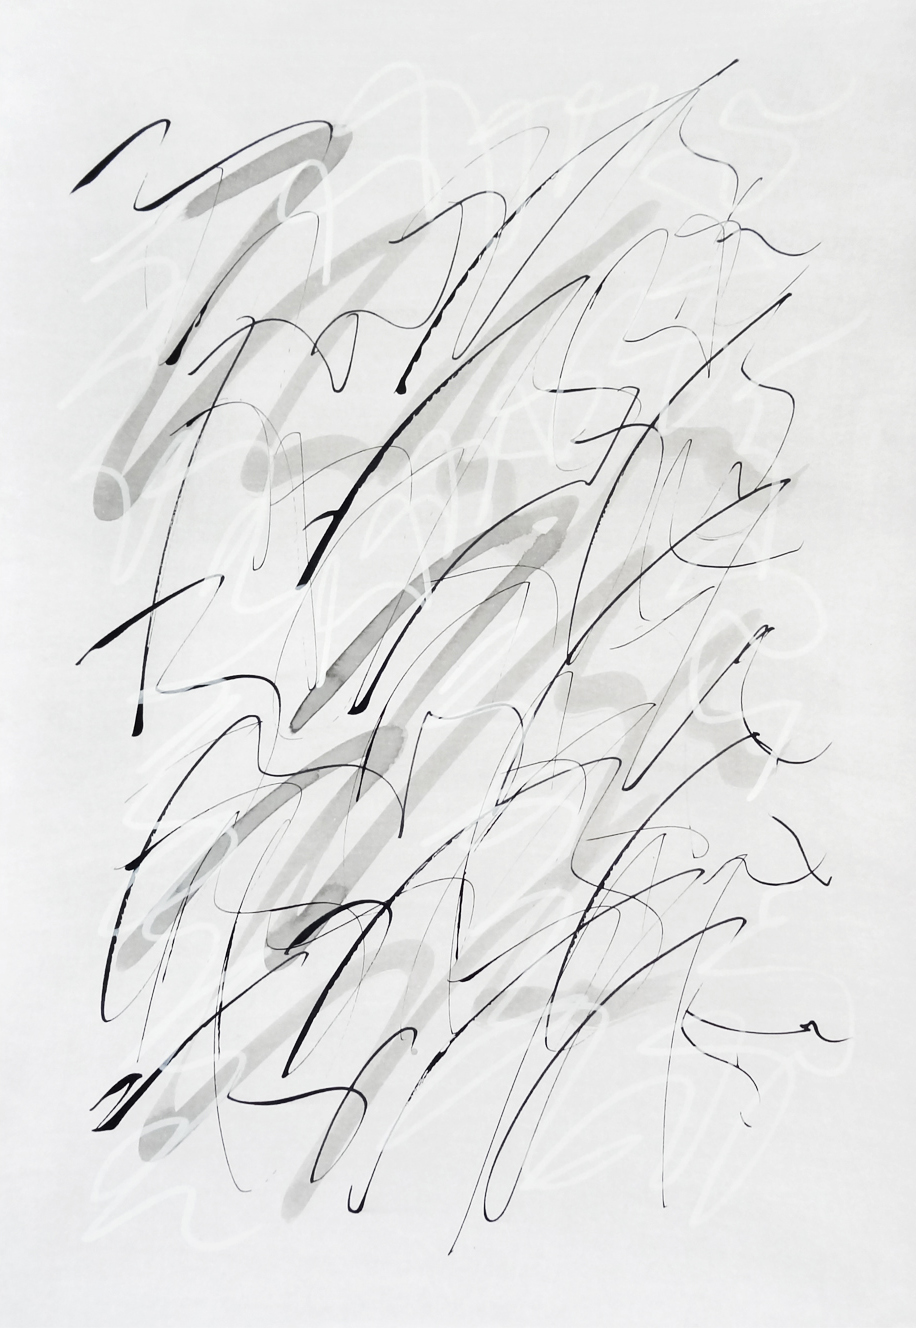 Untitled, 2019 calligraphy ink on paper 42,0 x 29,7 cm (29-19)